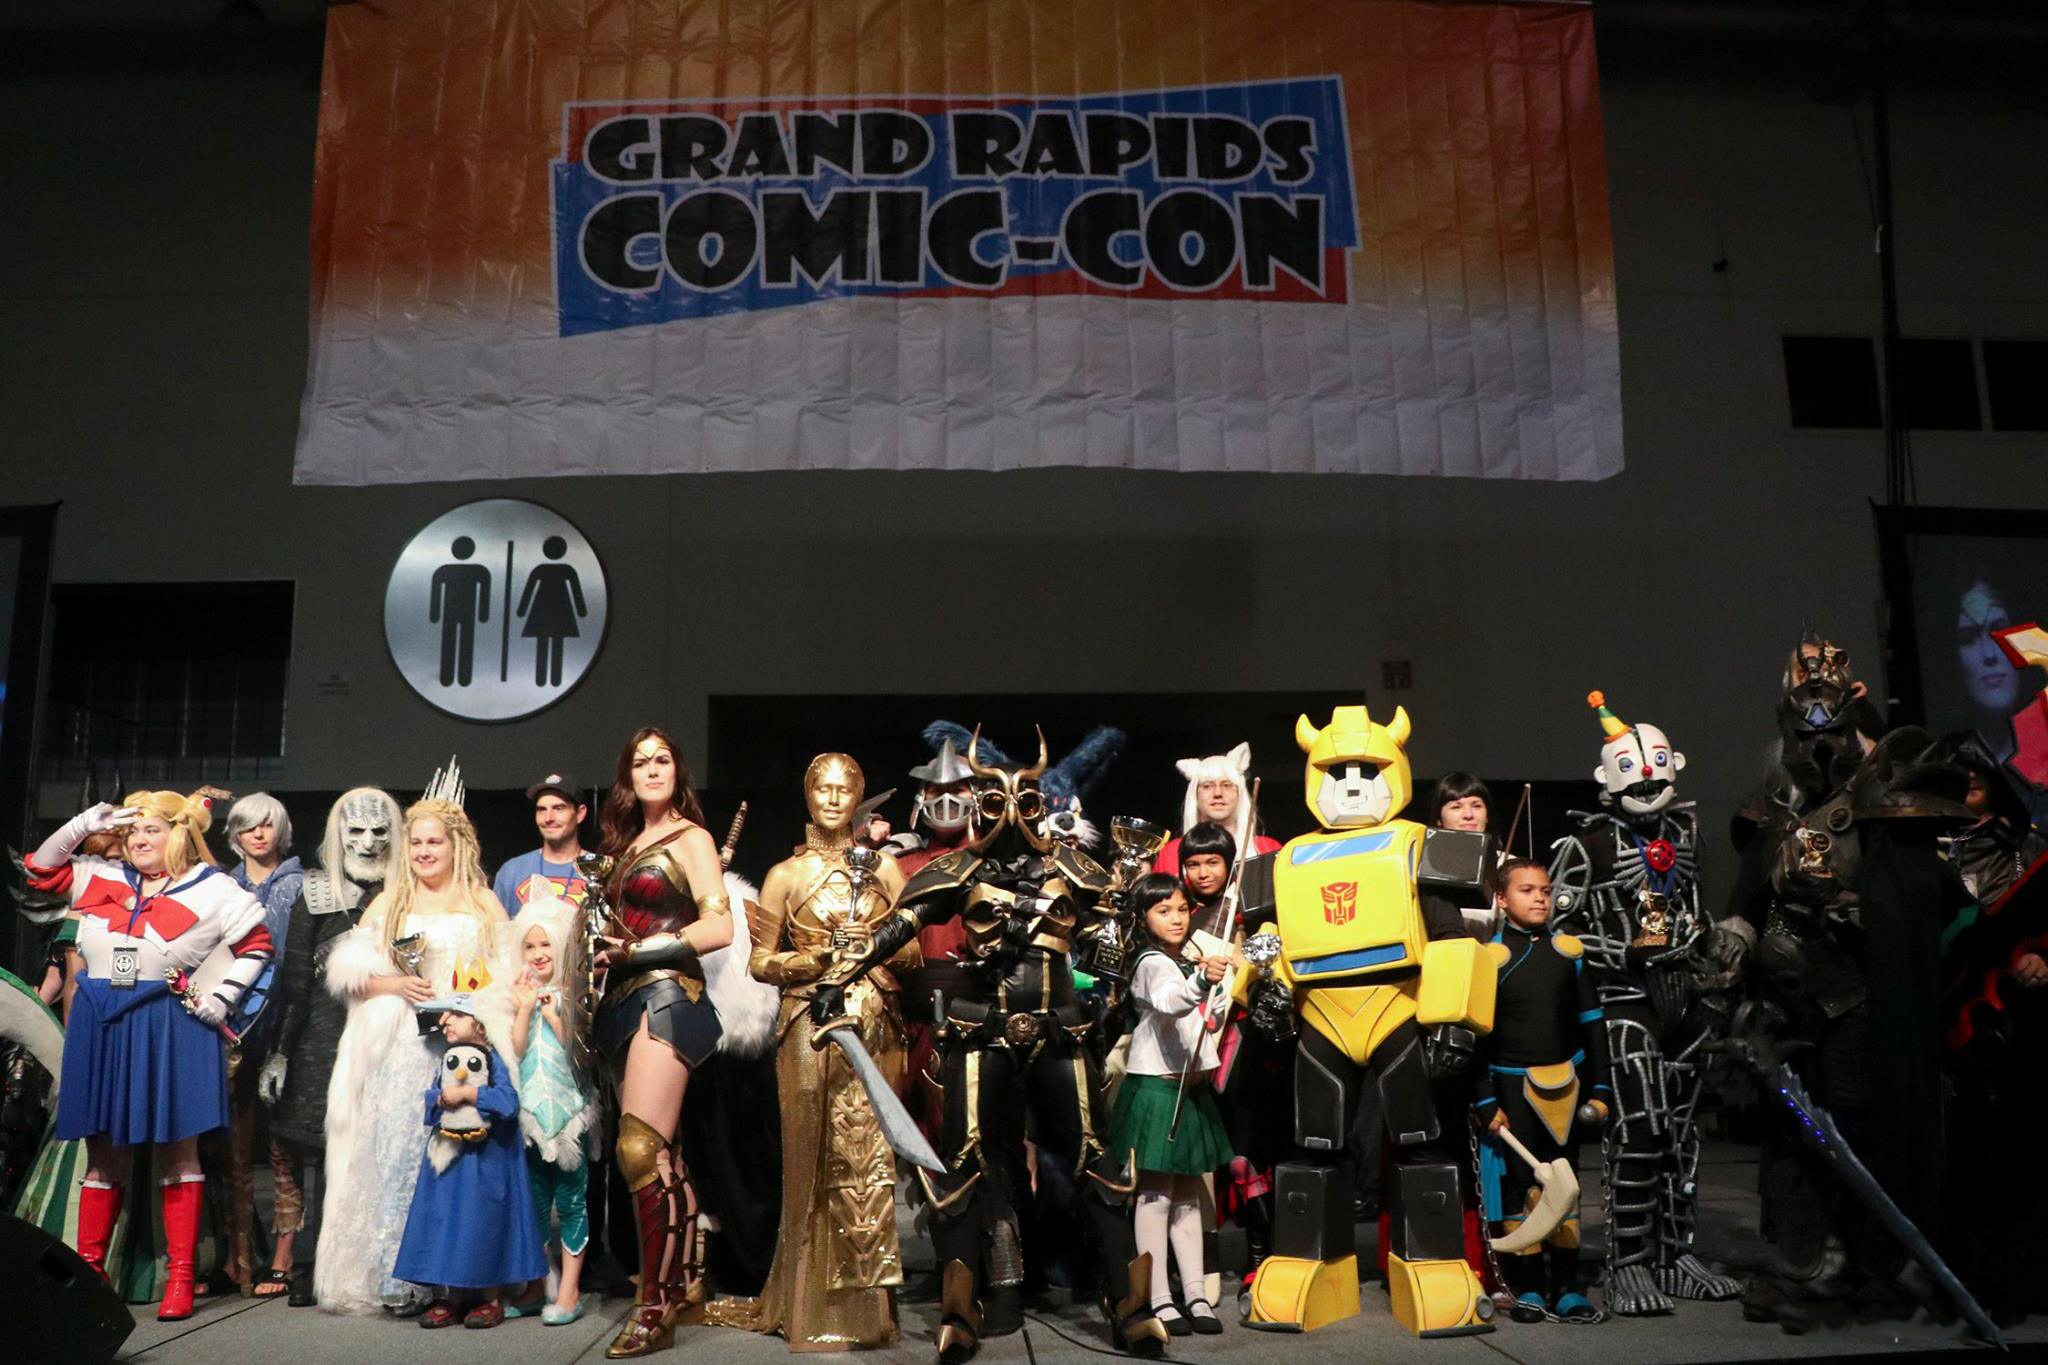 Grand Rapids Comic Con. Photo by Jacky Petters Photography.